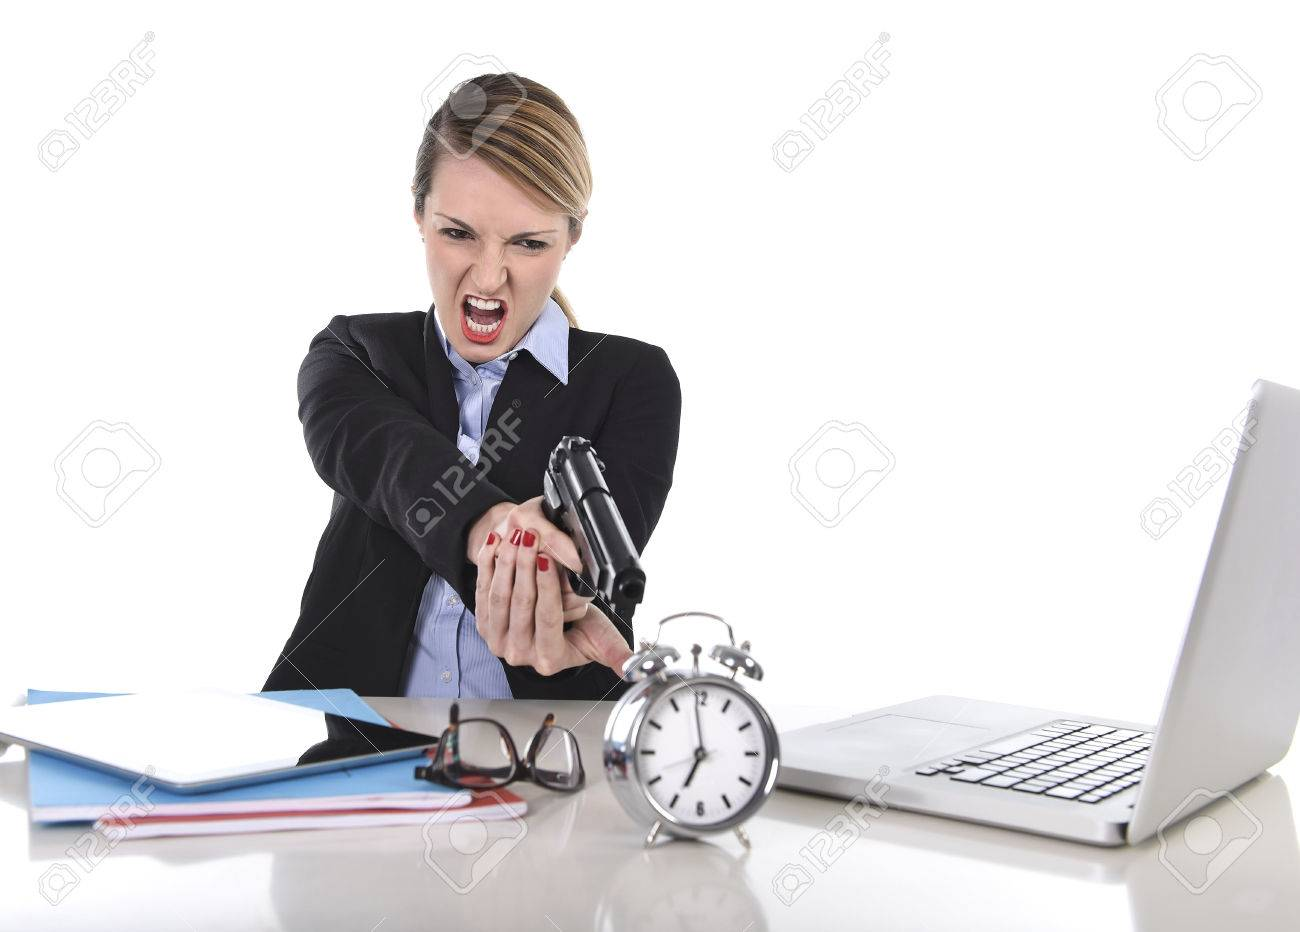 Image result for royalty free images angry at alarm